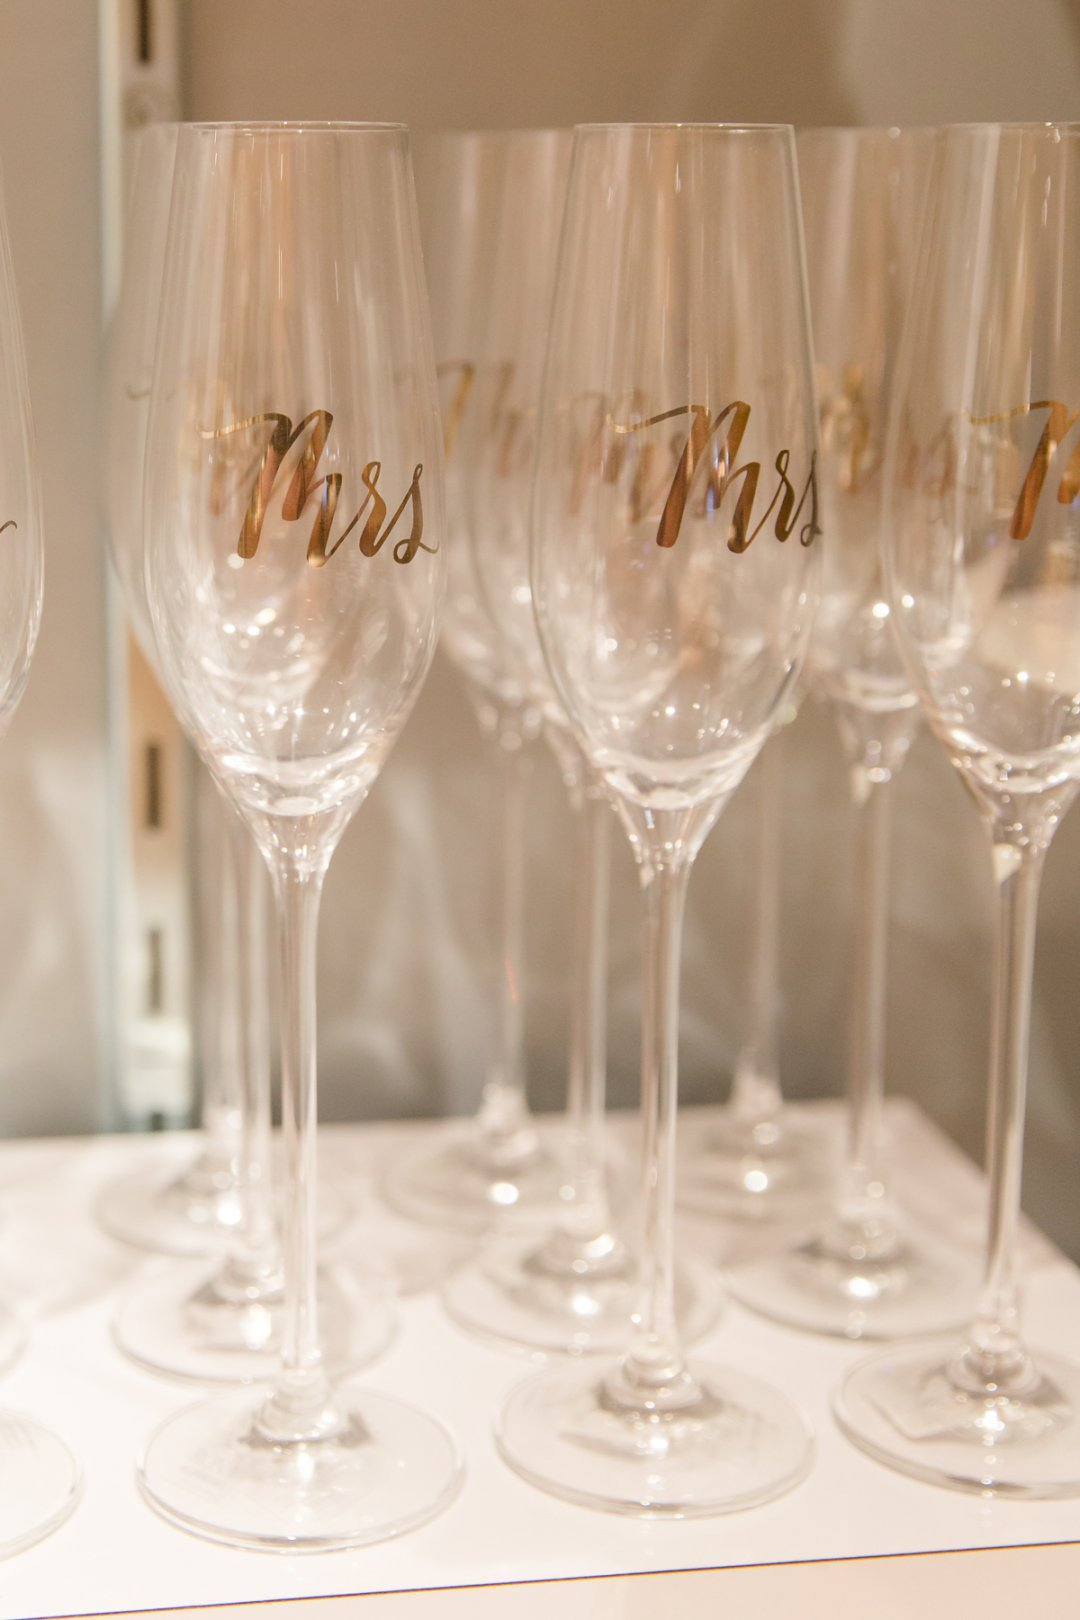 Mrs. in gold lettering on champagne glasses